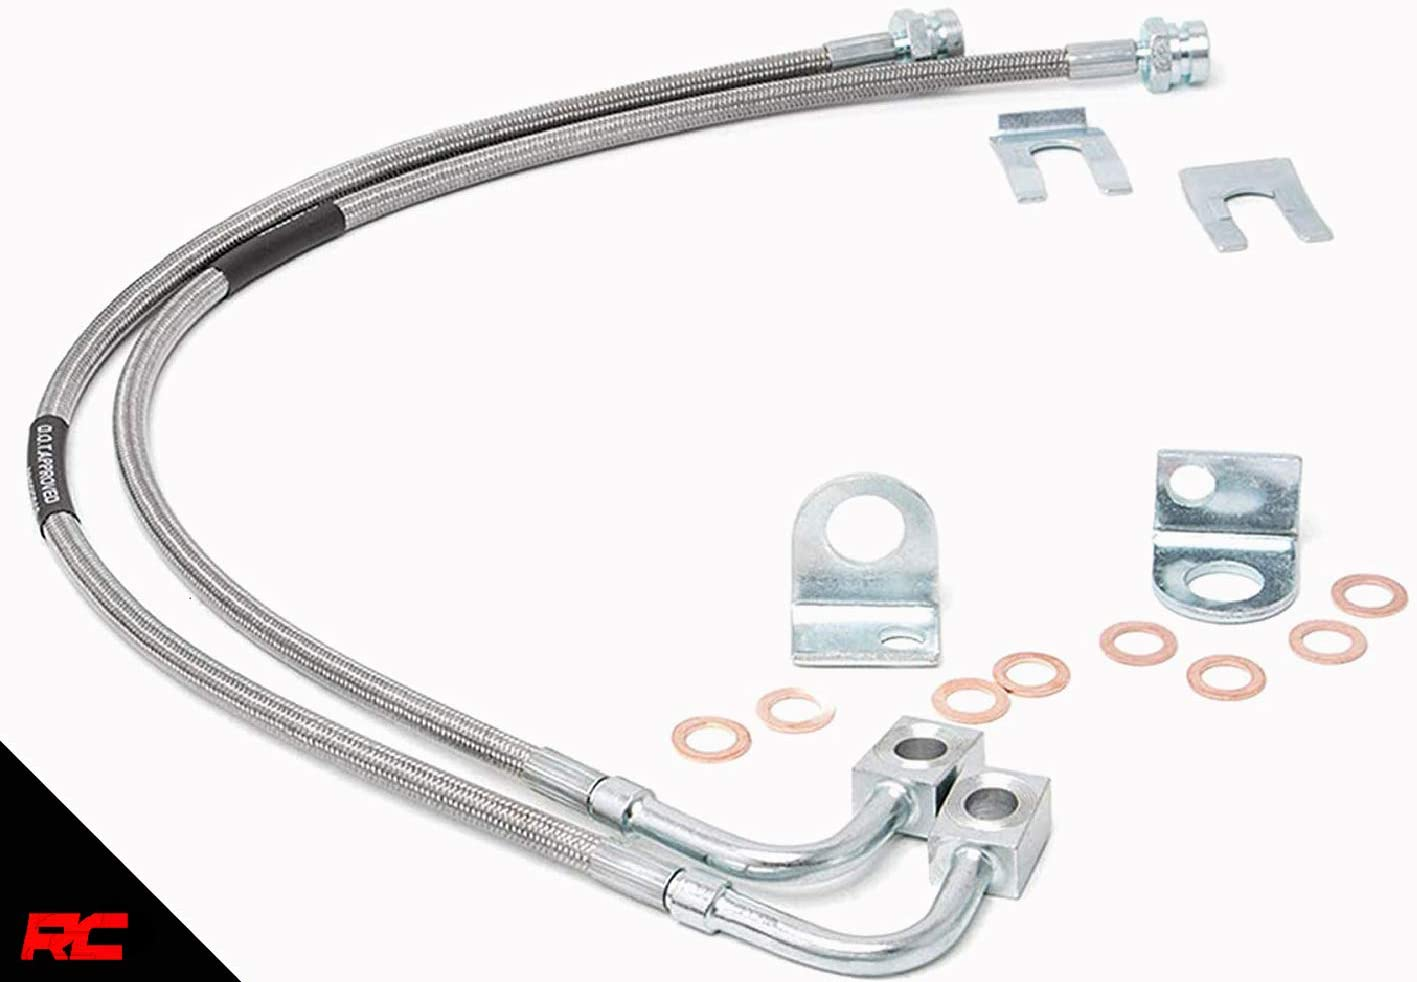 86 jeep cherokee vacuum diagram amazon com rough country front extended stainless brake lines  rough country front extended stainless